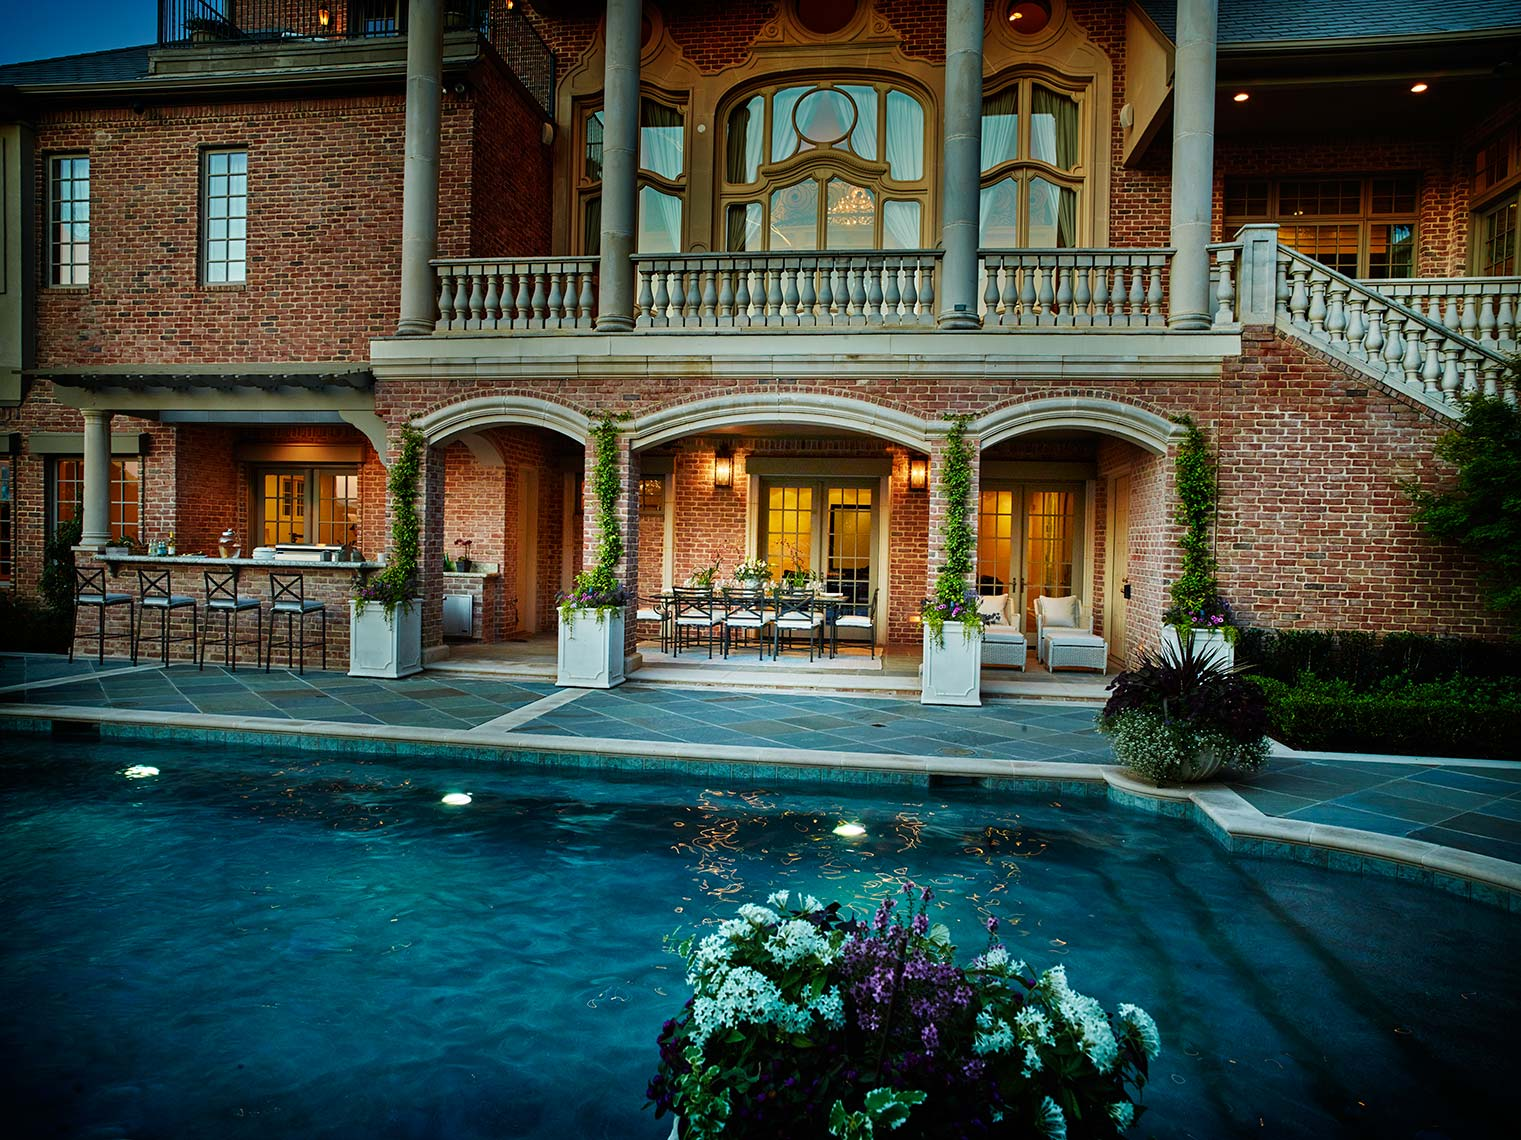 architecture and design in balconies and pool areas.